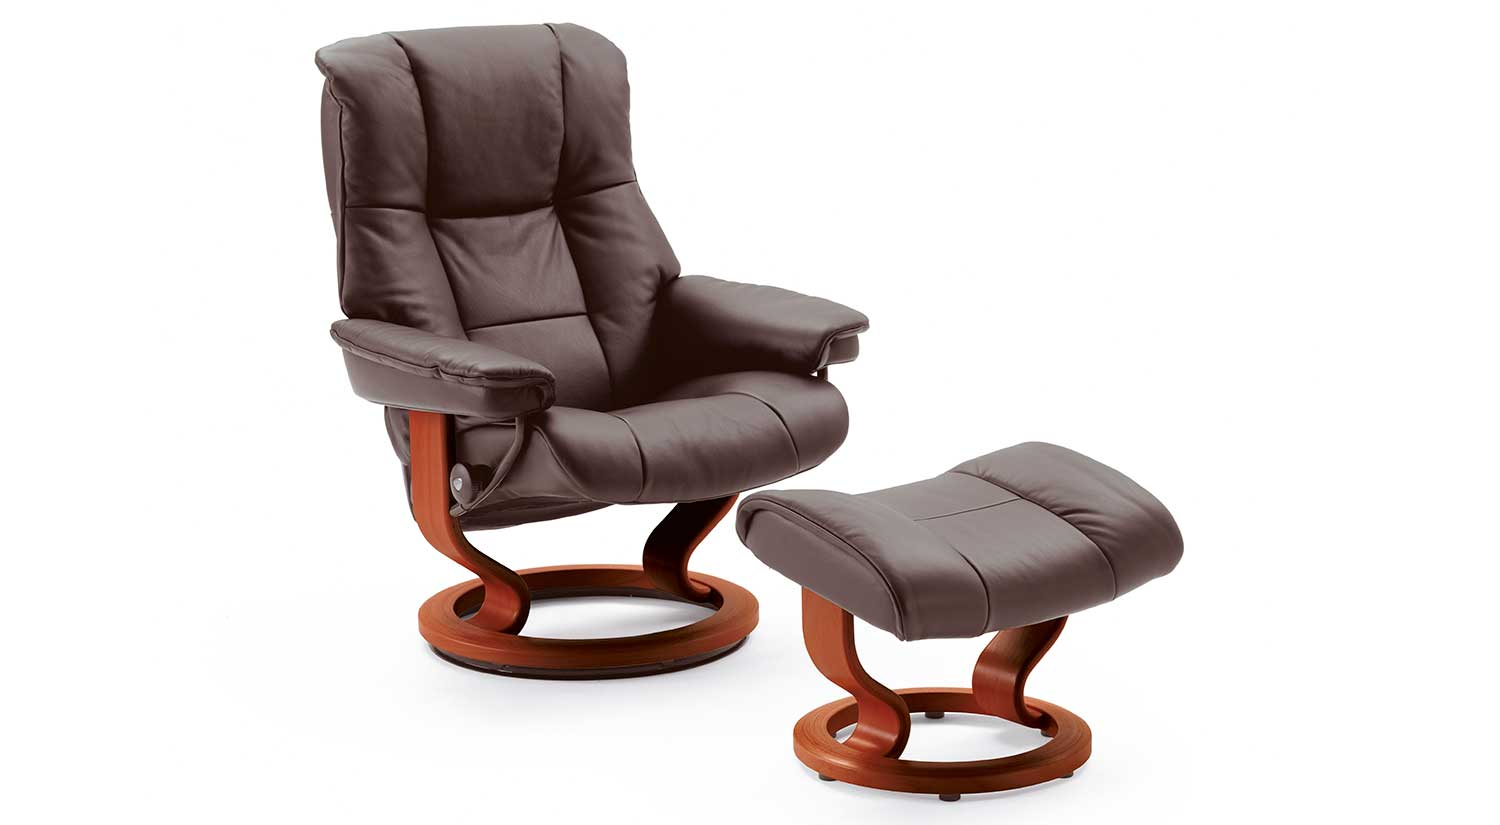 Mayfair Stressless Chairs and Ottomans